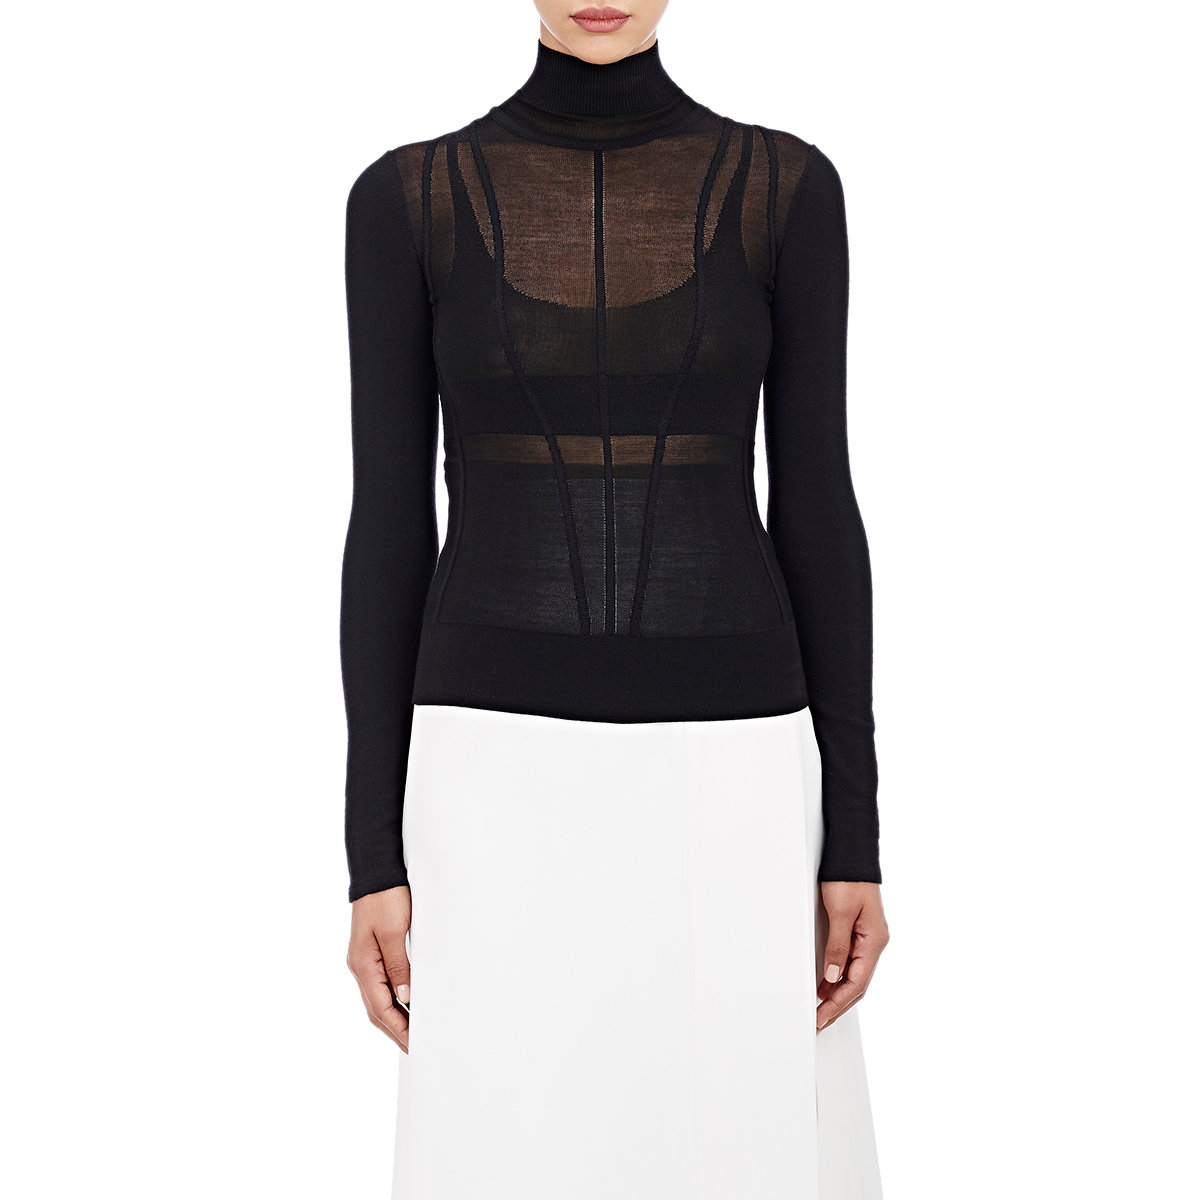 2645347890 Lyst - Narciso Rodriguez Women s Sheer-detail Turtleneck Sweater in ...